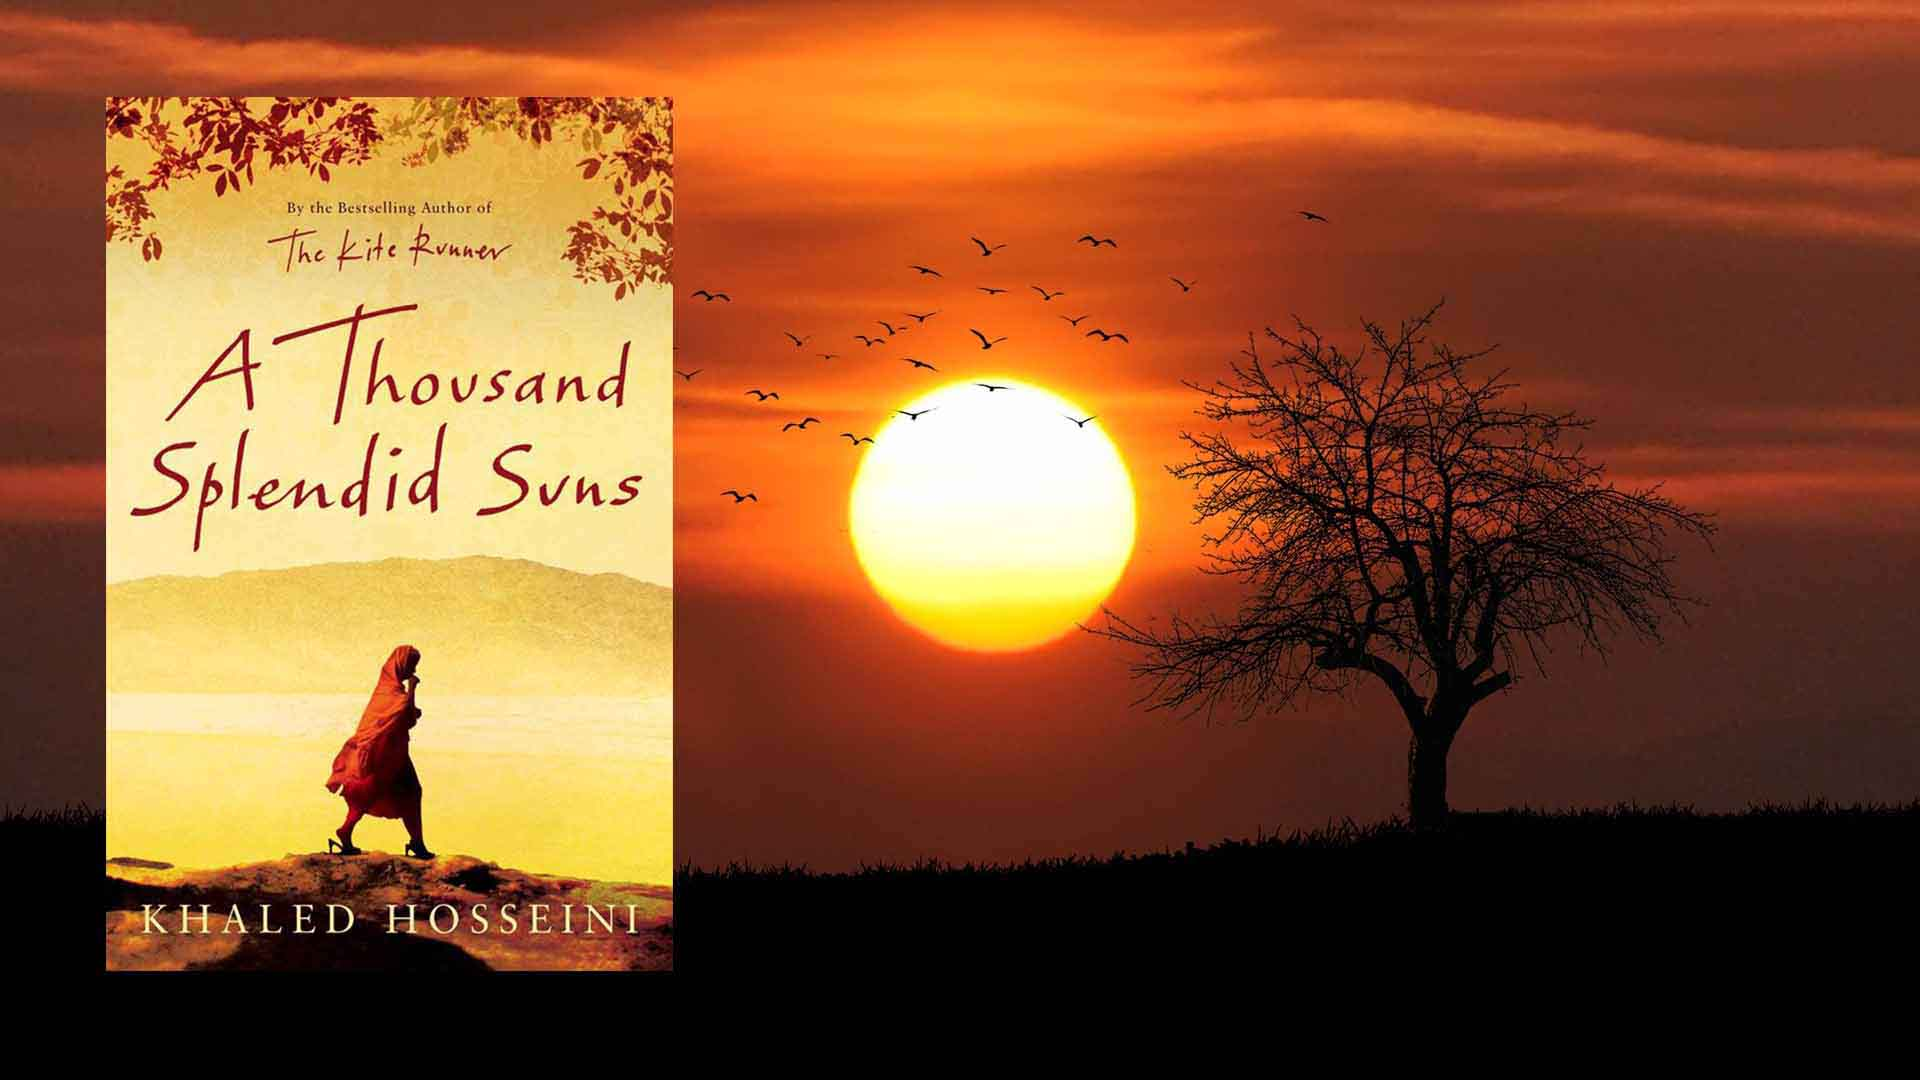 A Thousand Splendid Suns - Famous Books